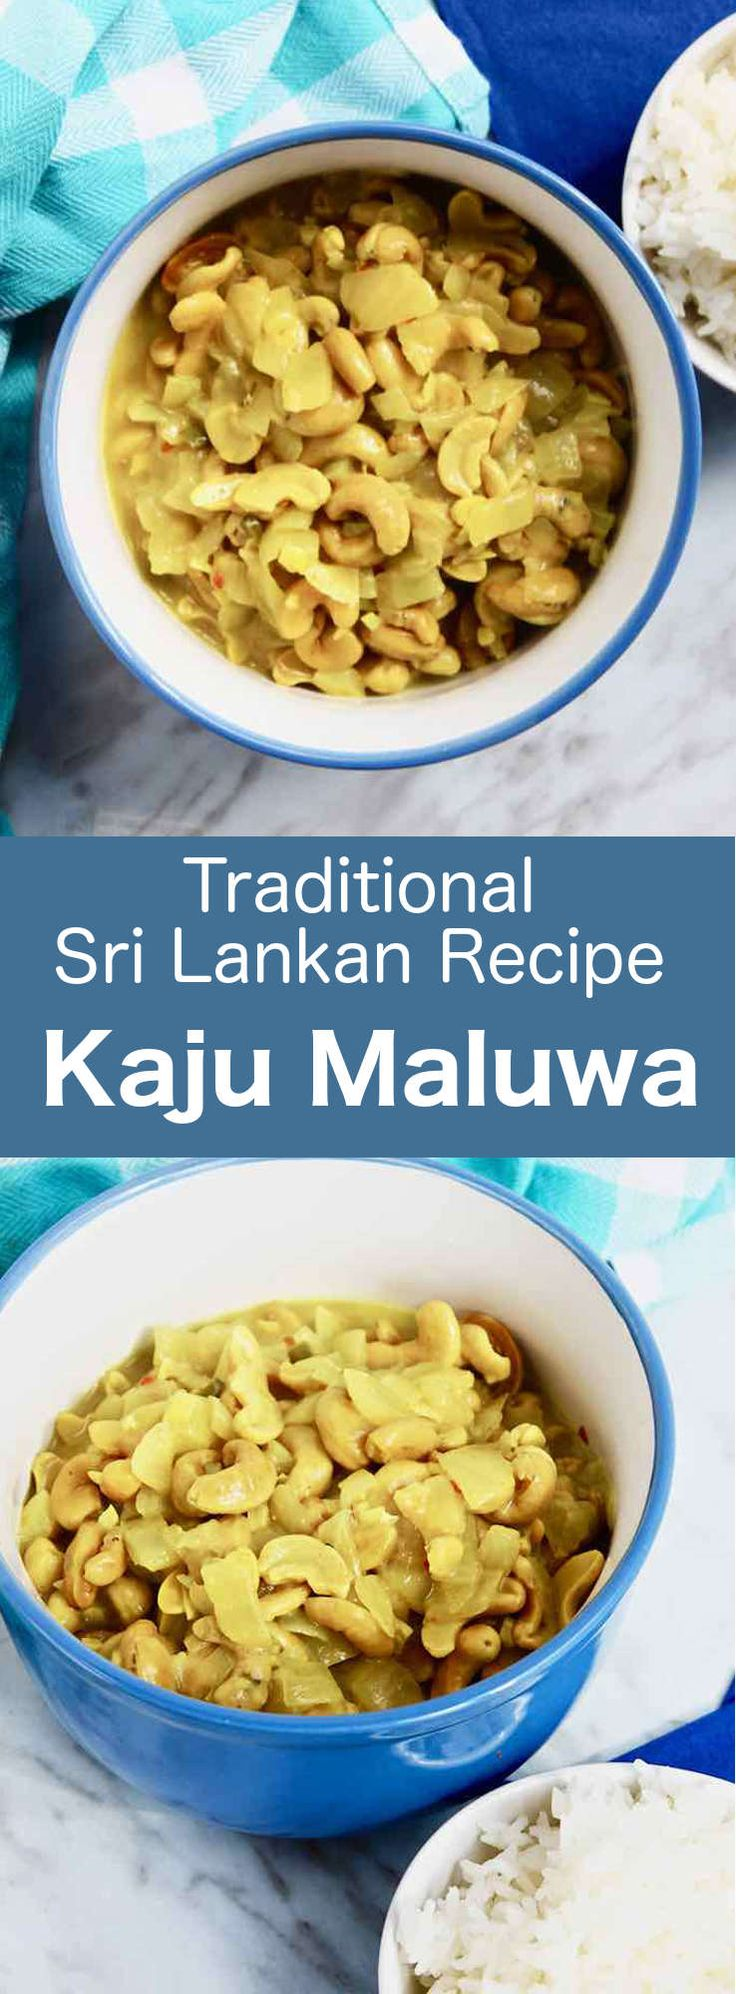 25 best 196 Sri Lanka Recipes images on Pinterest